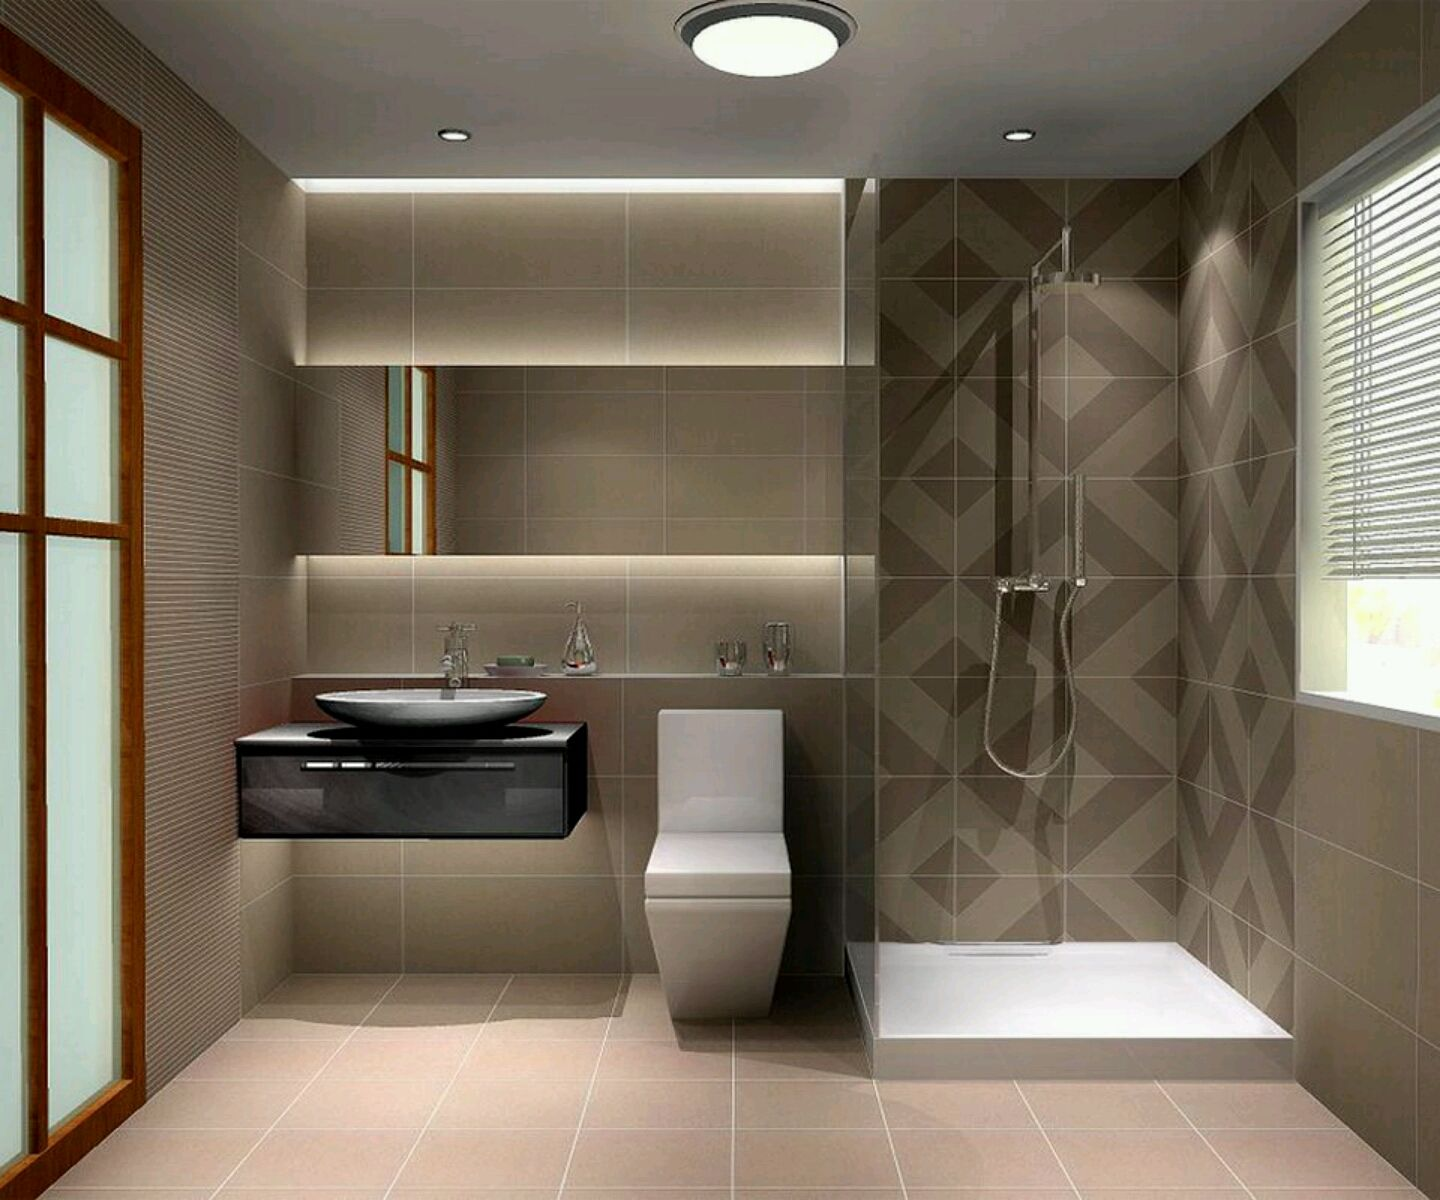 Bathroom Design Gallery Small Bathrooms Designs 2014 T In Inspiration